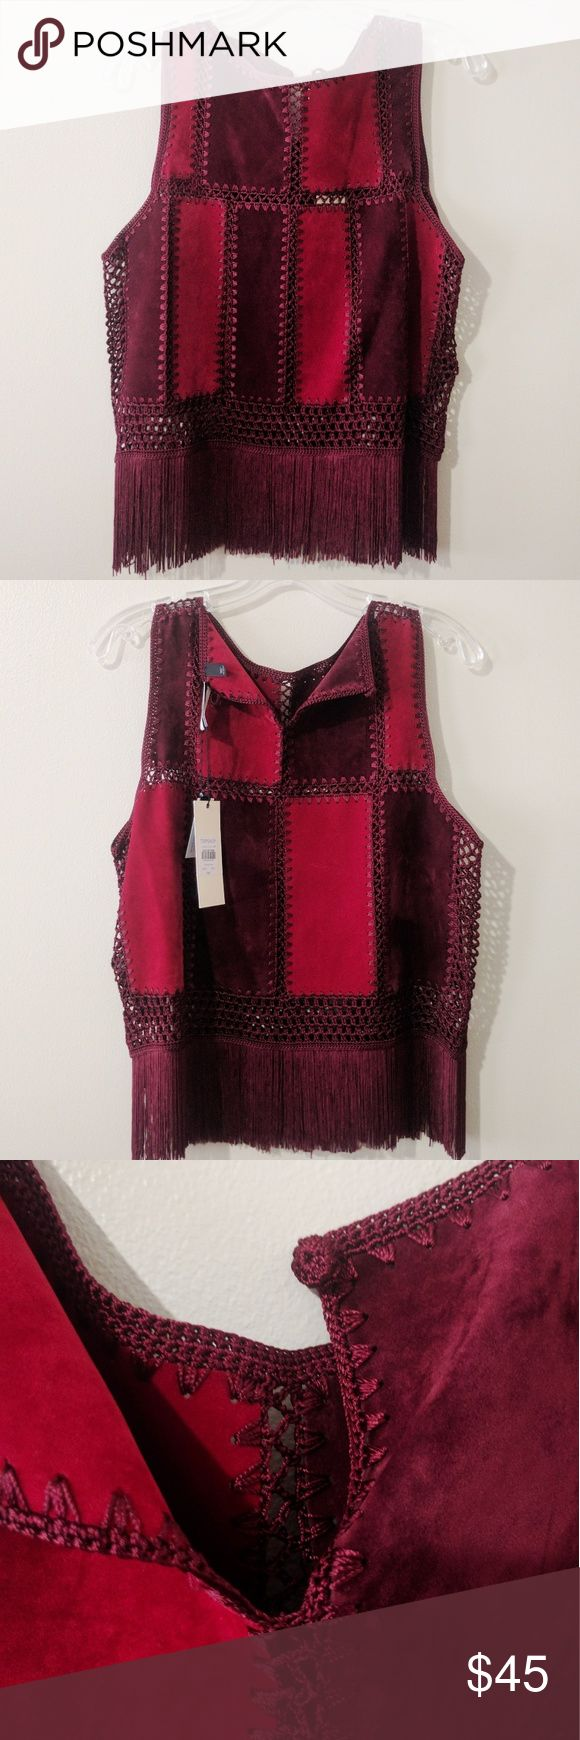 NWT Topshop Red Suedette Fringe Tank Top '70s inspired sleeveless tank. Featuring crochet and suedette panels for instant texture and finished with a fringed hem. 100% Viscose. Machine wash. Topshop Tops Tank Tops